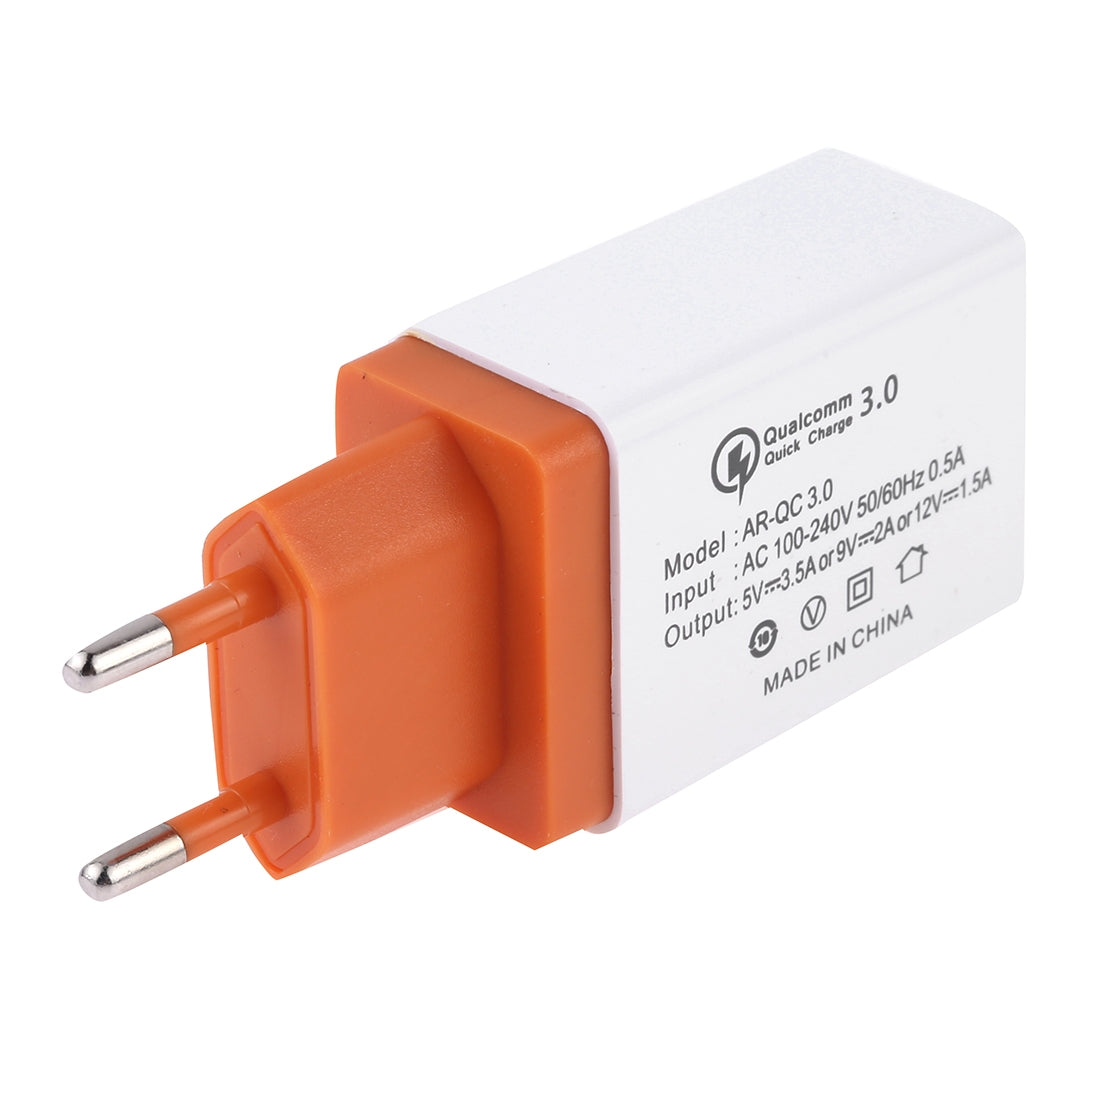 AR-QC 3.0 3.5A Max Output Single QC3.0 USB Ports Travel Fast Charger, EU Plug(Orange)